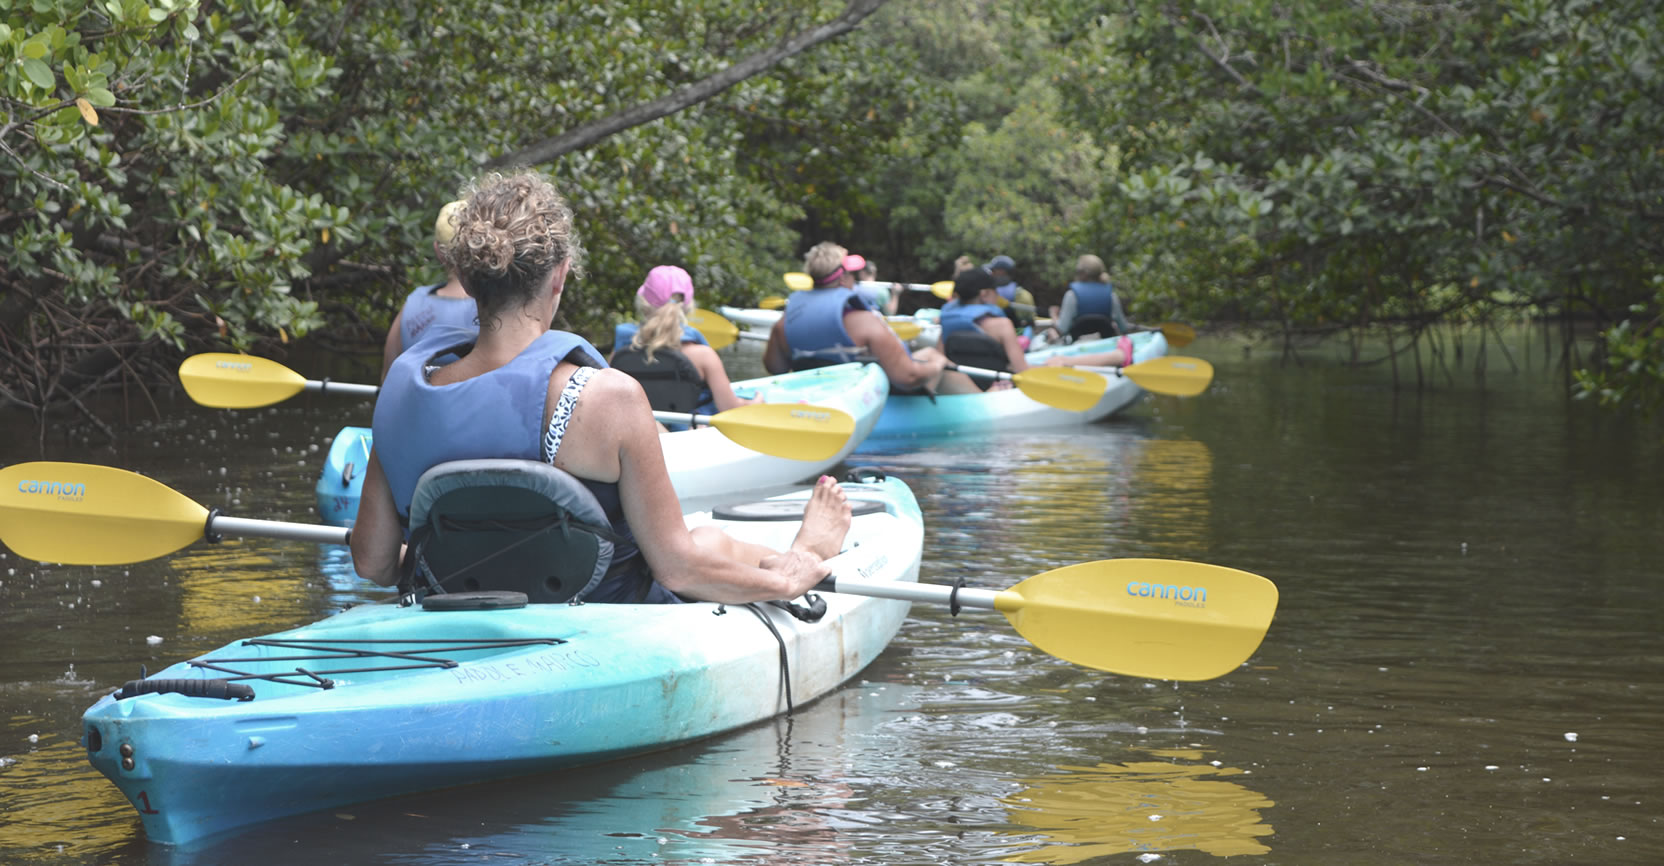 About our kayak tours